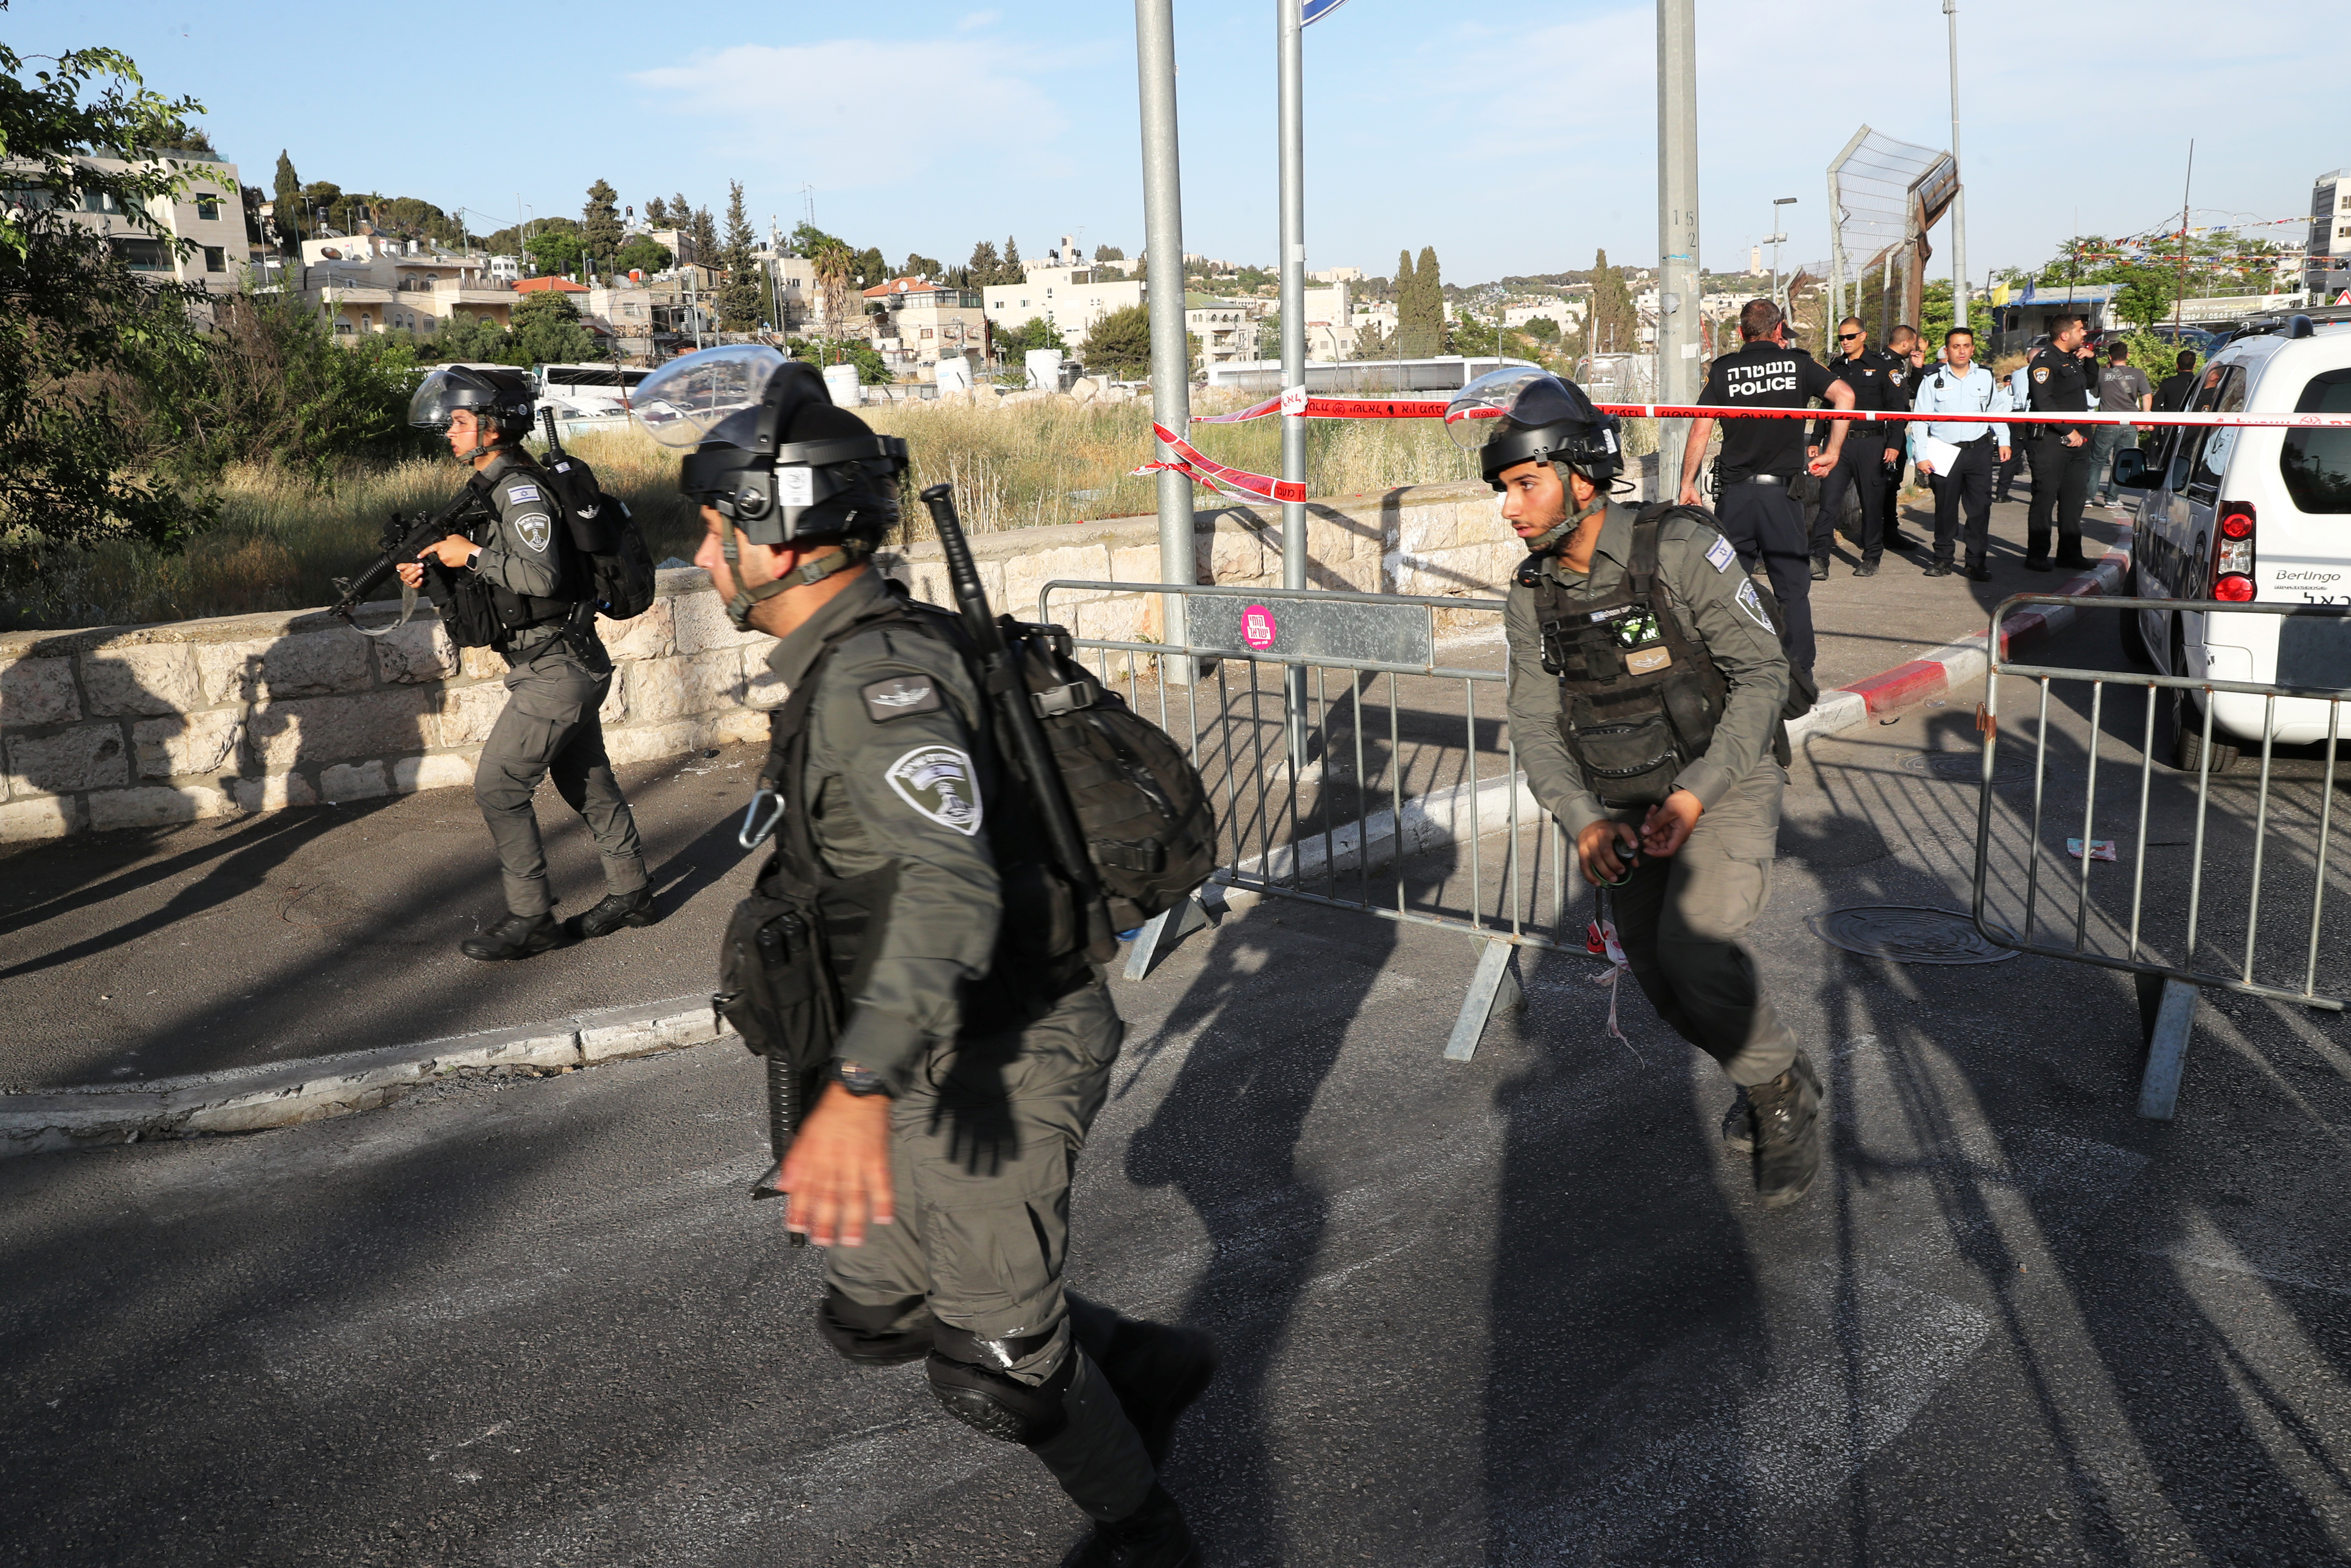 Israeli security forces run at the scene of what police said was a suspected car-ramming attack, at the entrance to Sheikh Jarrah neighbourhood of East Jerusalem May 16, 2021. REUTERS/Ronen Zvulun